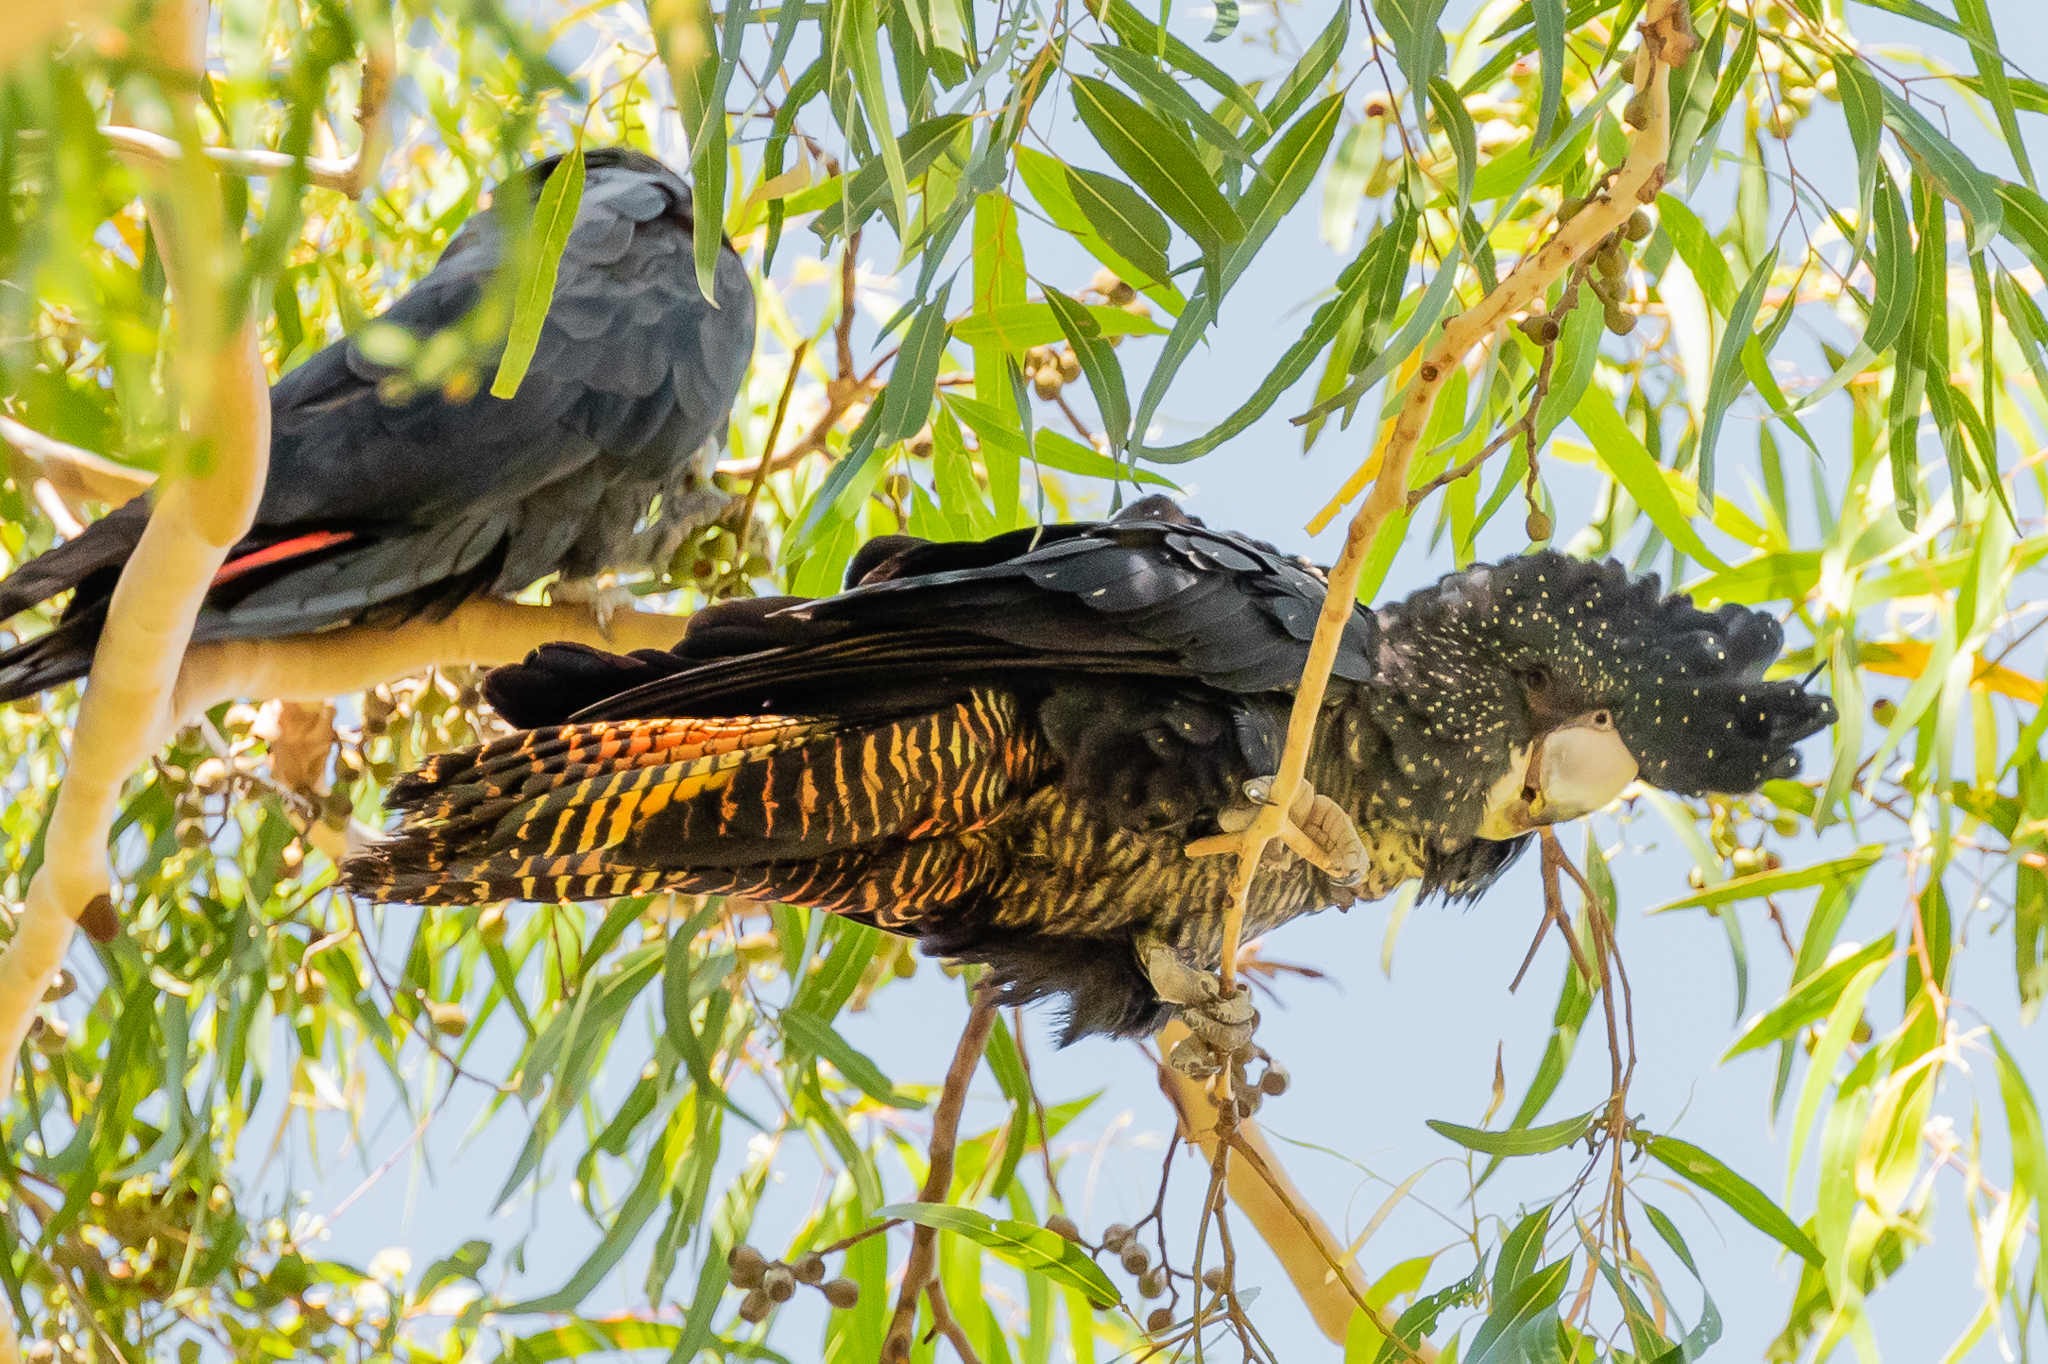 The South-Western race of Red-tailed Black-Cockatoo is also listed as threatened. The male (top) shows scarlet panels in the tail, the female (lower) shows her barred tail and white spots.